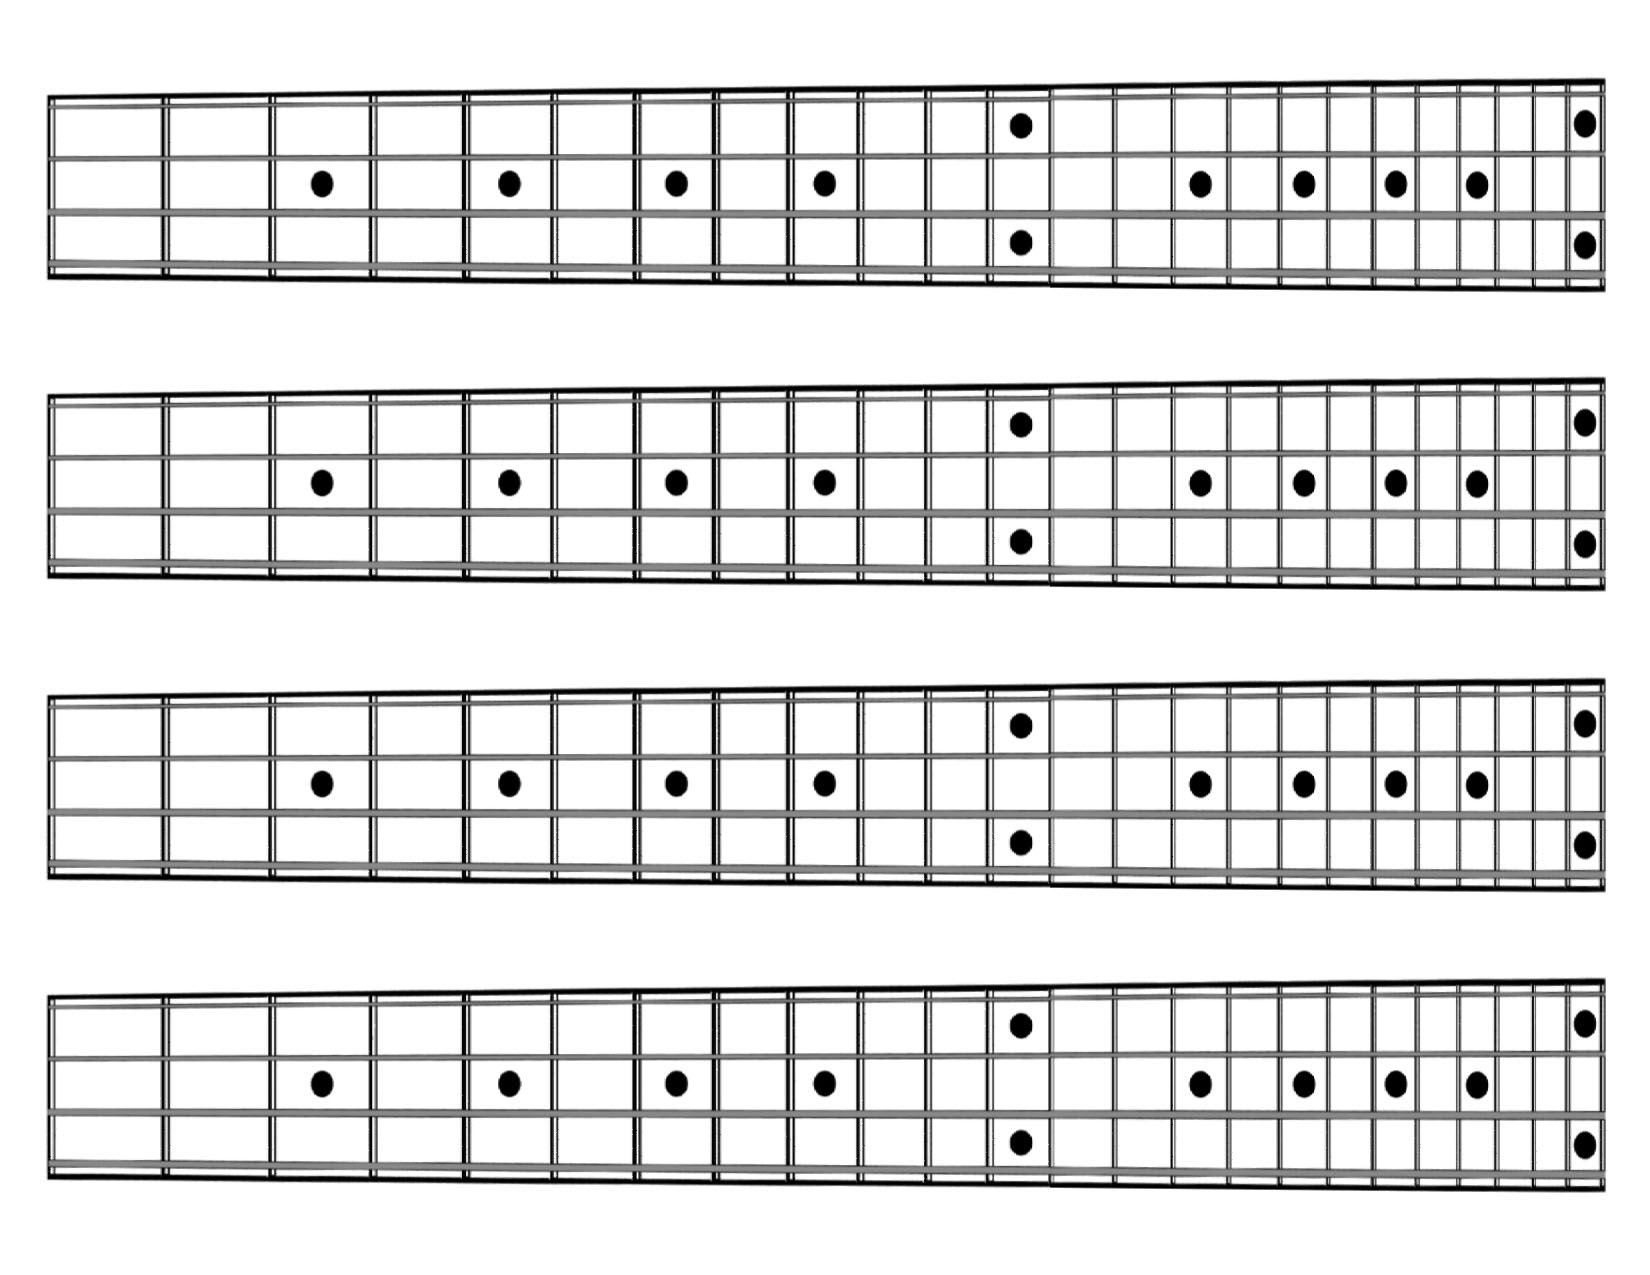 It's just a graphic of Fan Guitar Fretboard Notes Printable